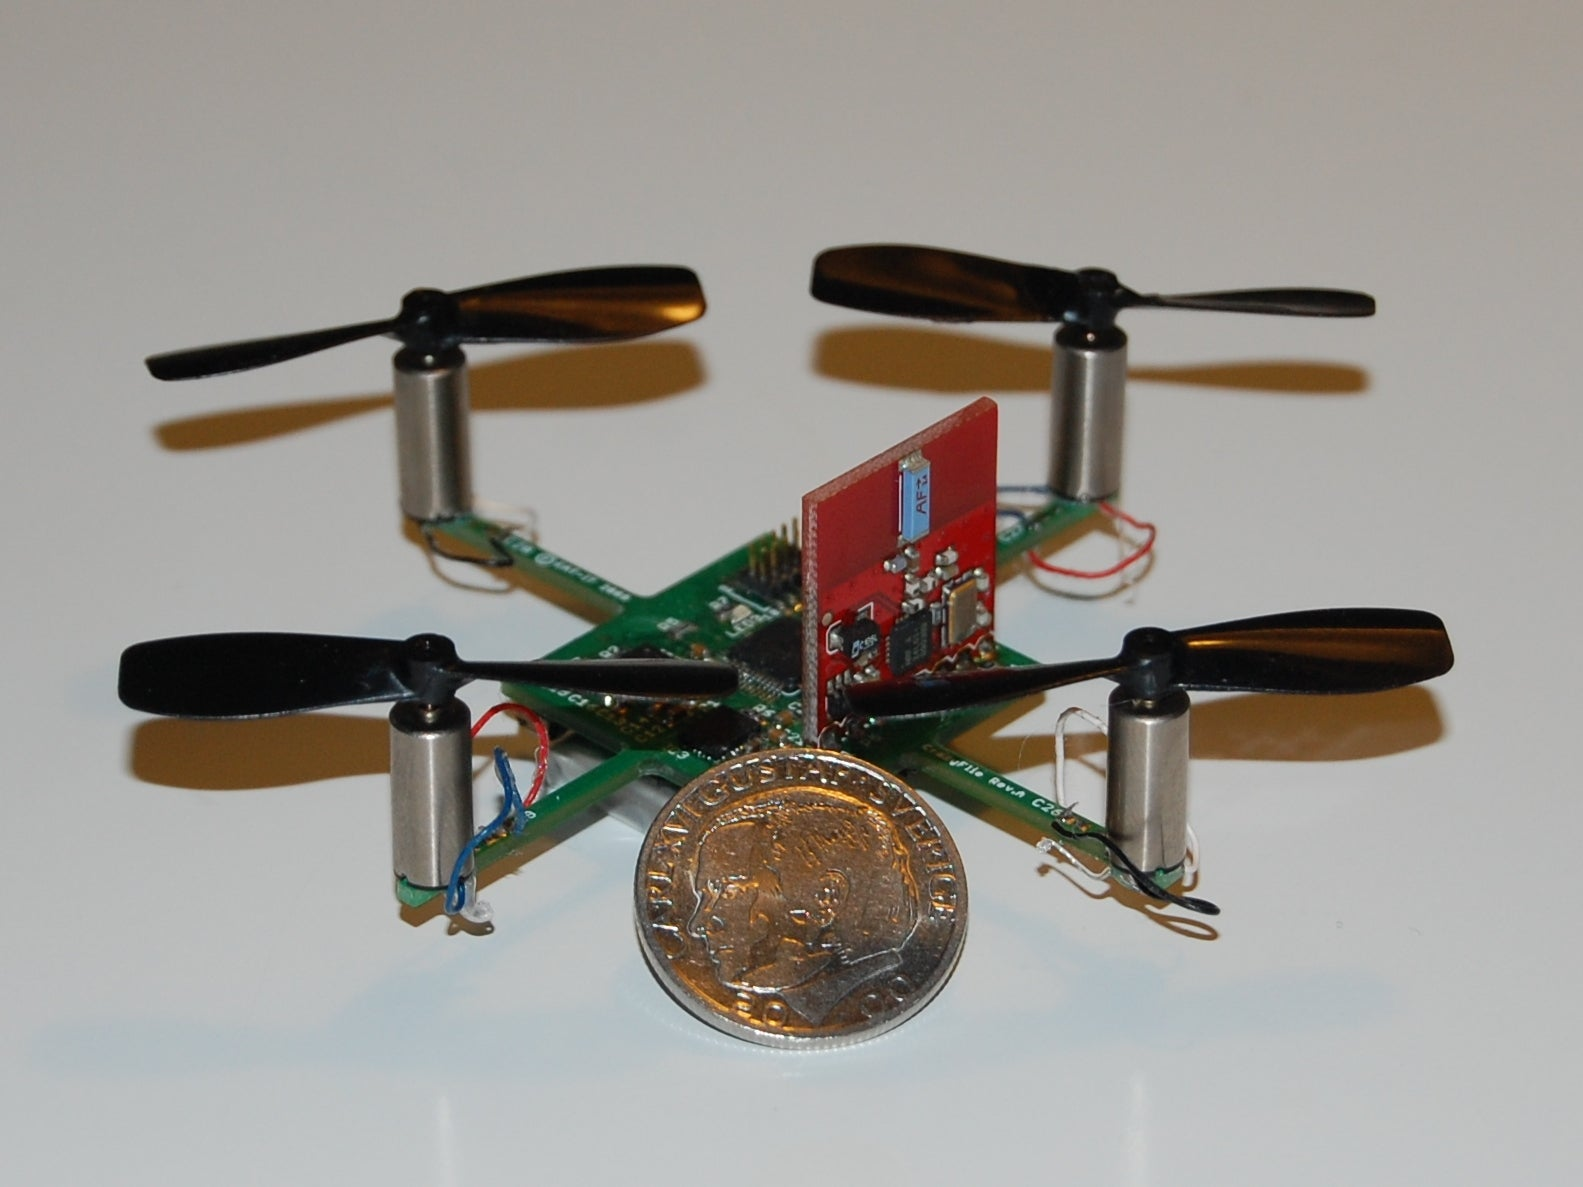 Video: Tiny Buzzing Quadcopter Is Basically Just a Flying Computer Chip